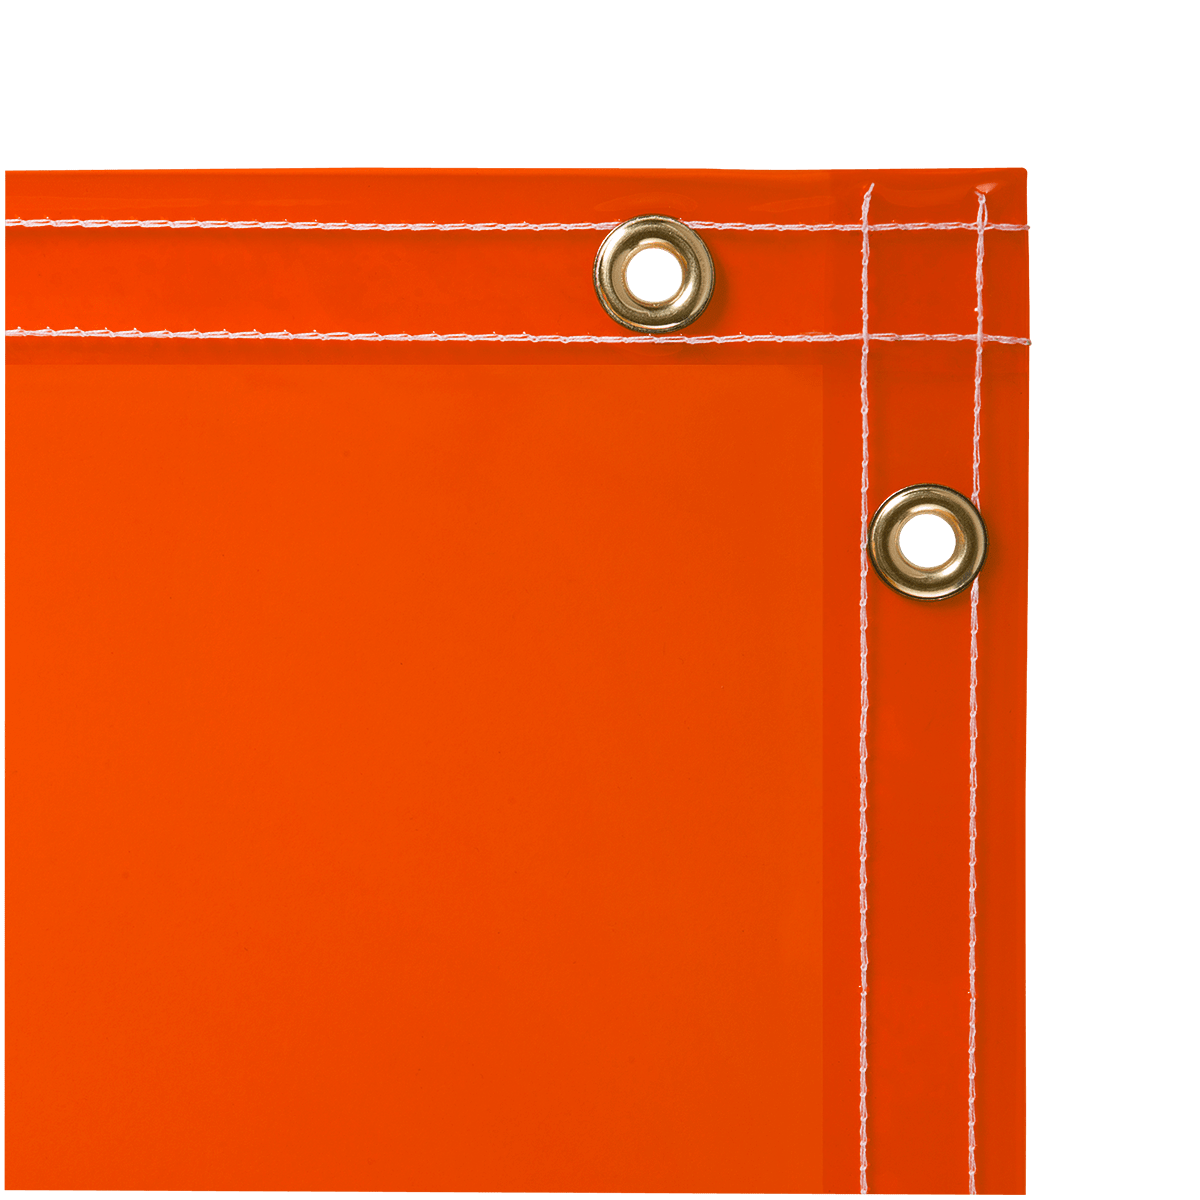 Arcview 14 Mil Flame Retardant Tinted Transparent Vinyl Welding Curtain Orange Steiner - Vorhang Pvc Transparent